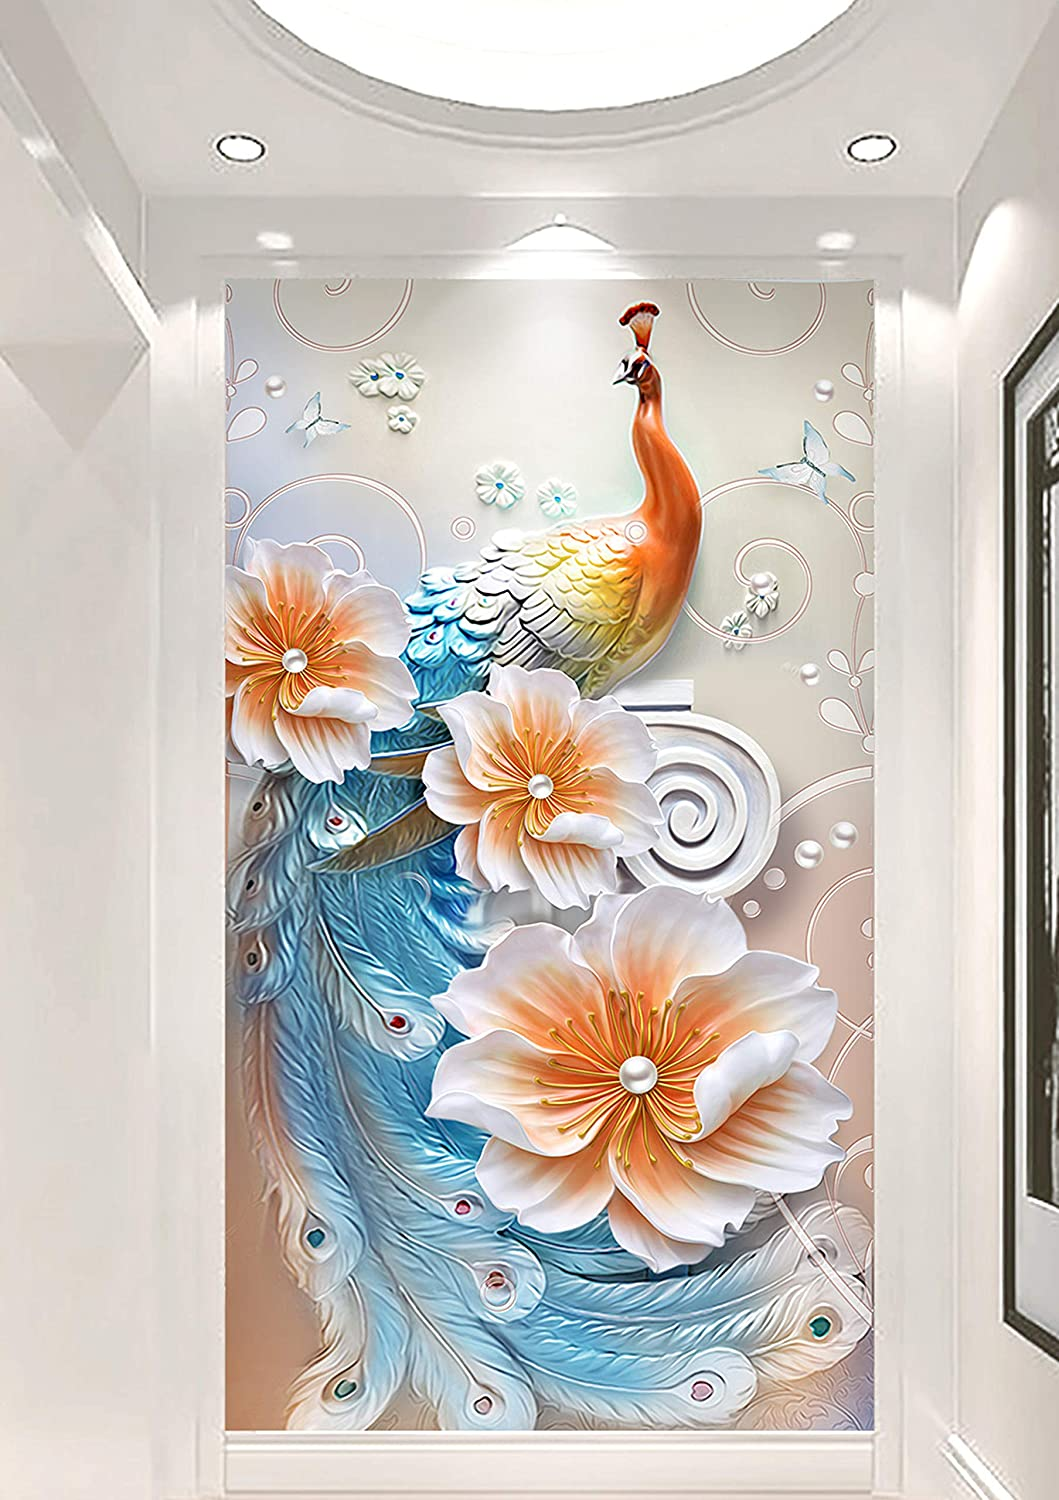 Free shipping on posting reviews AJ WALLPAPER 3D Pearl Peacock WG114 Omaha Mall Print Deco Paper Wall Decal